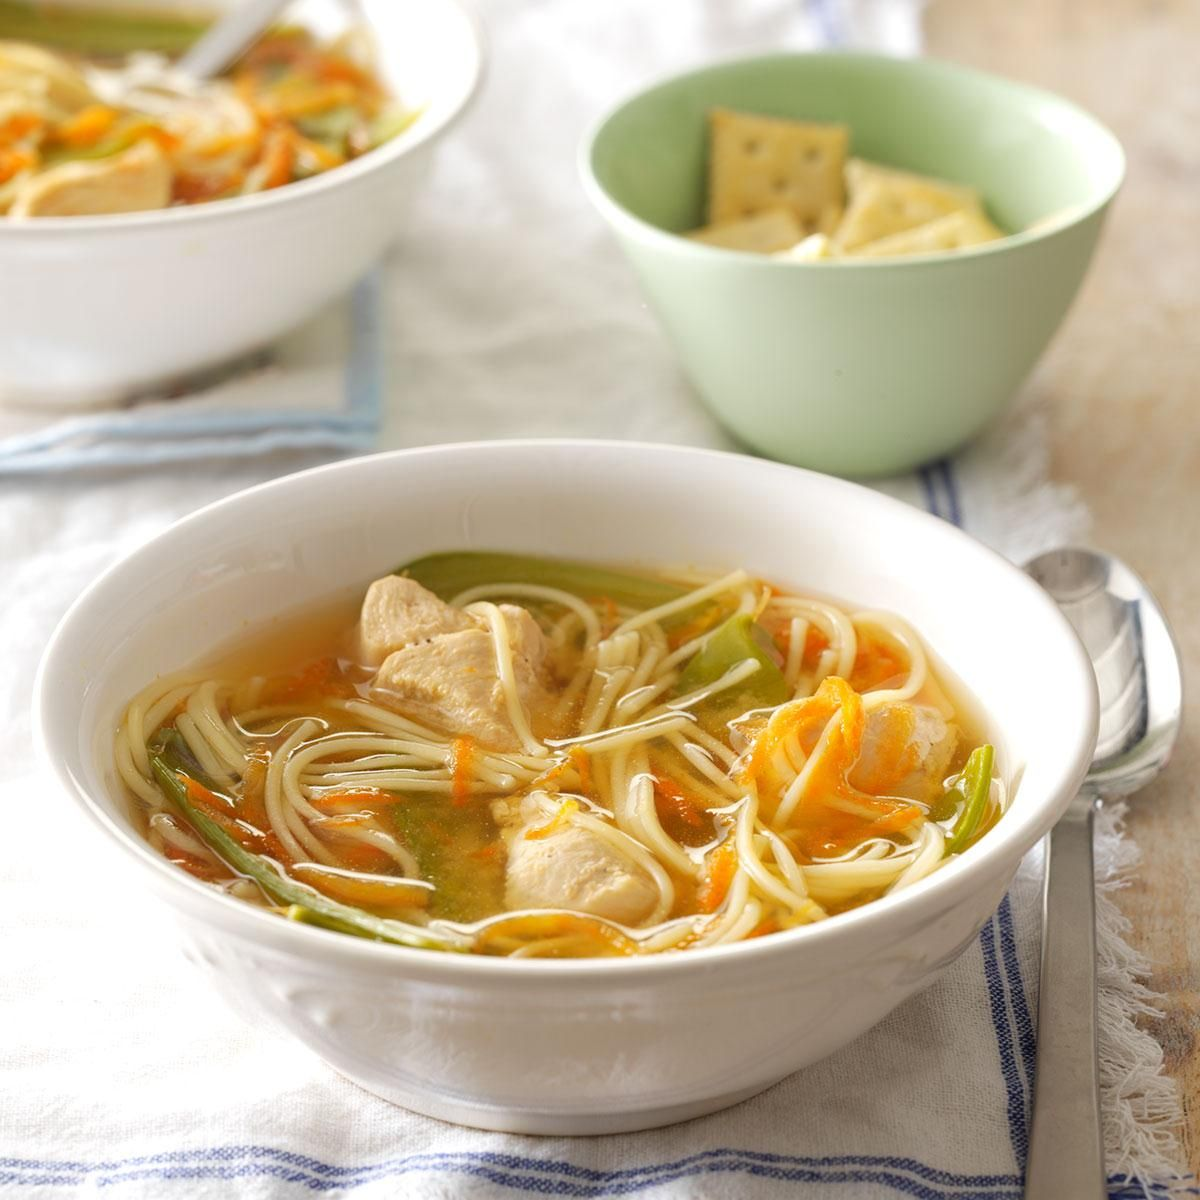 Discussion on this topic: Ginger-Chicken Noodle Soup, ginger-chicken-noodle-soup/